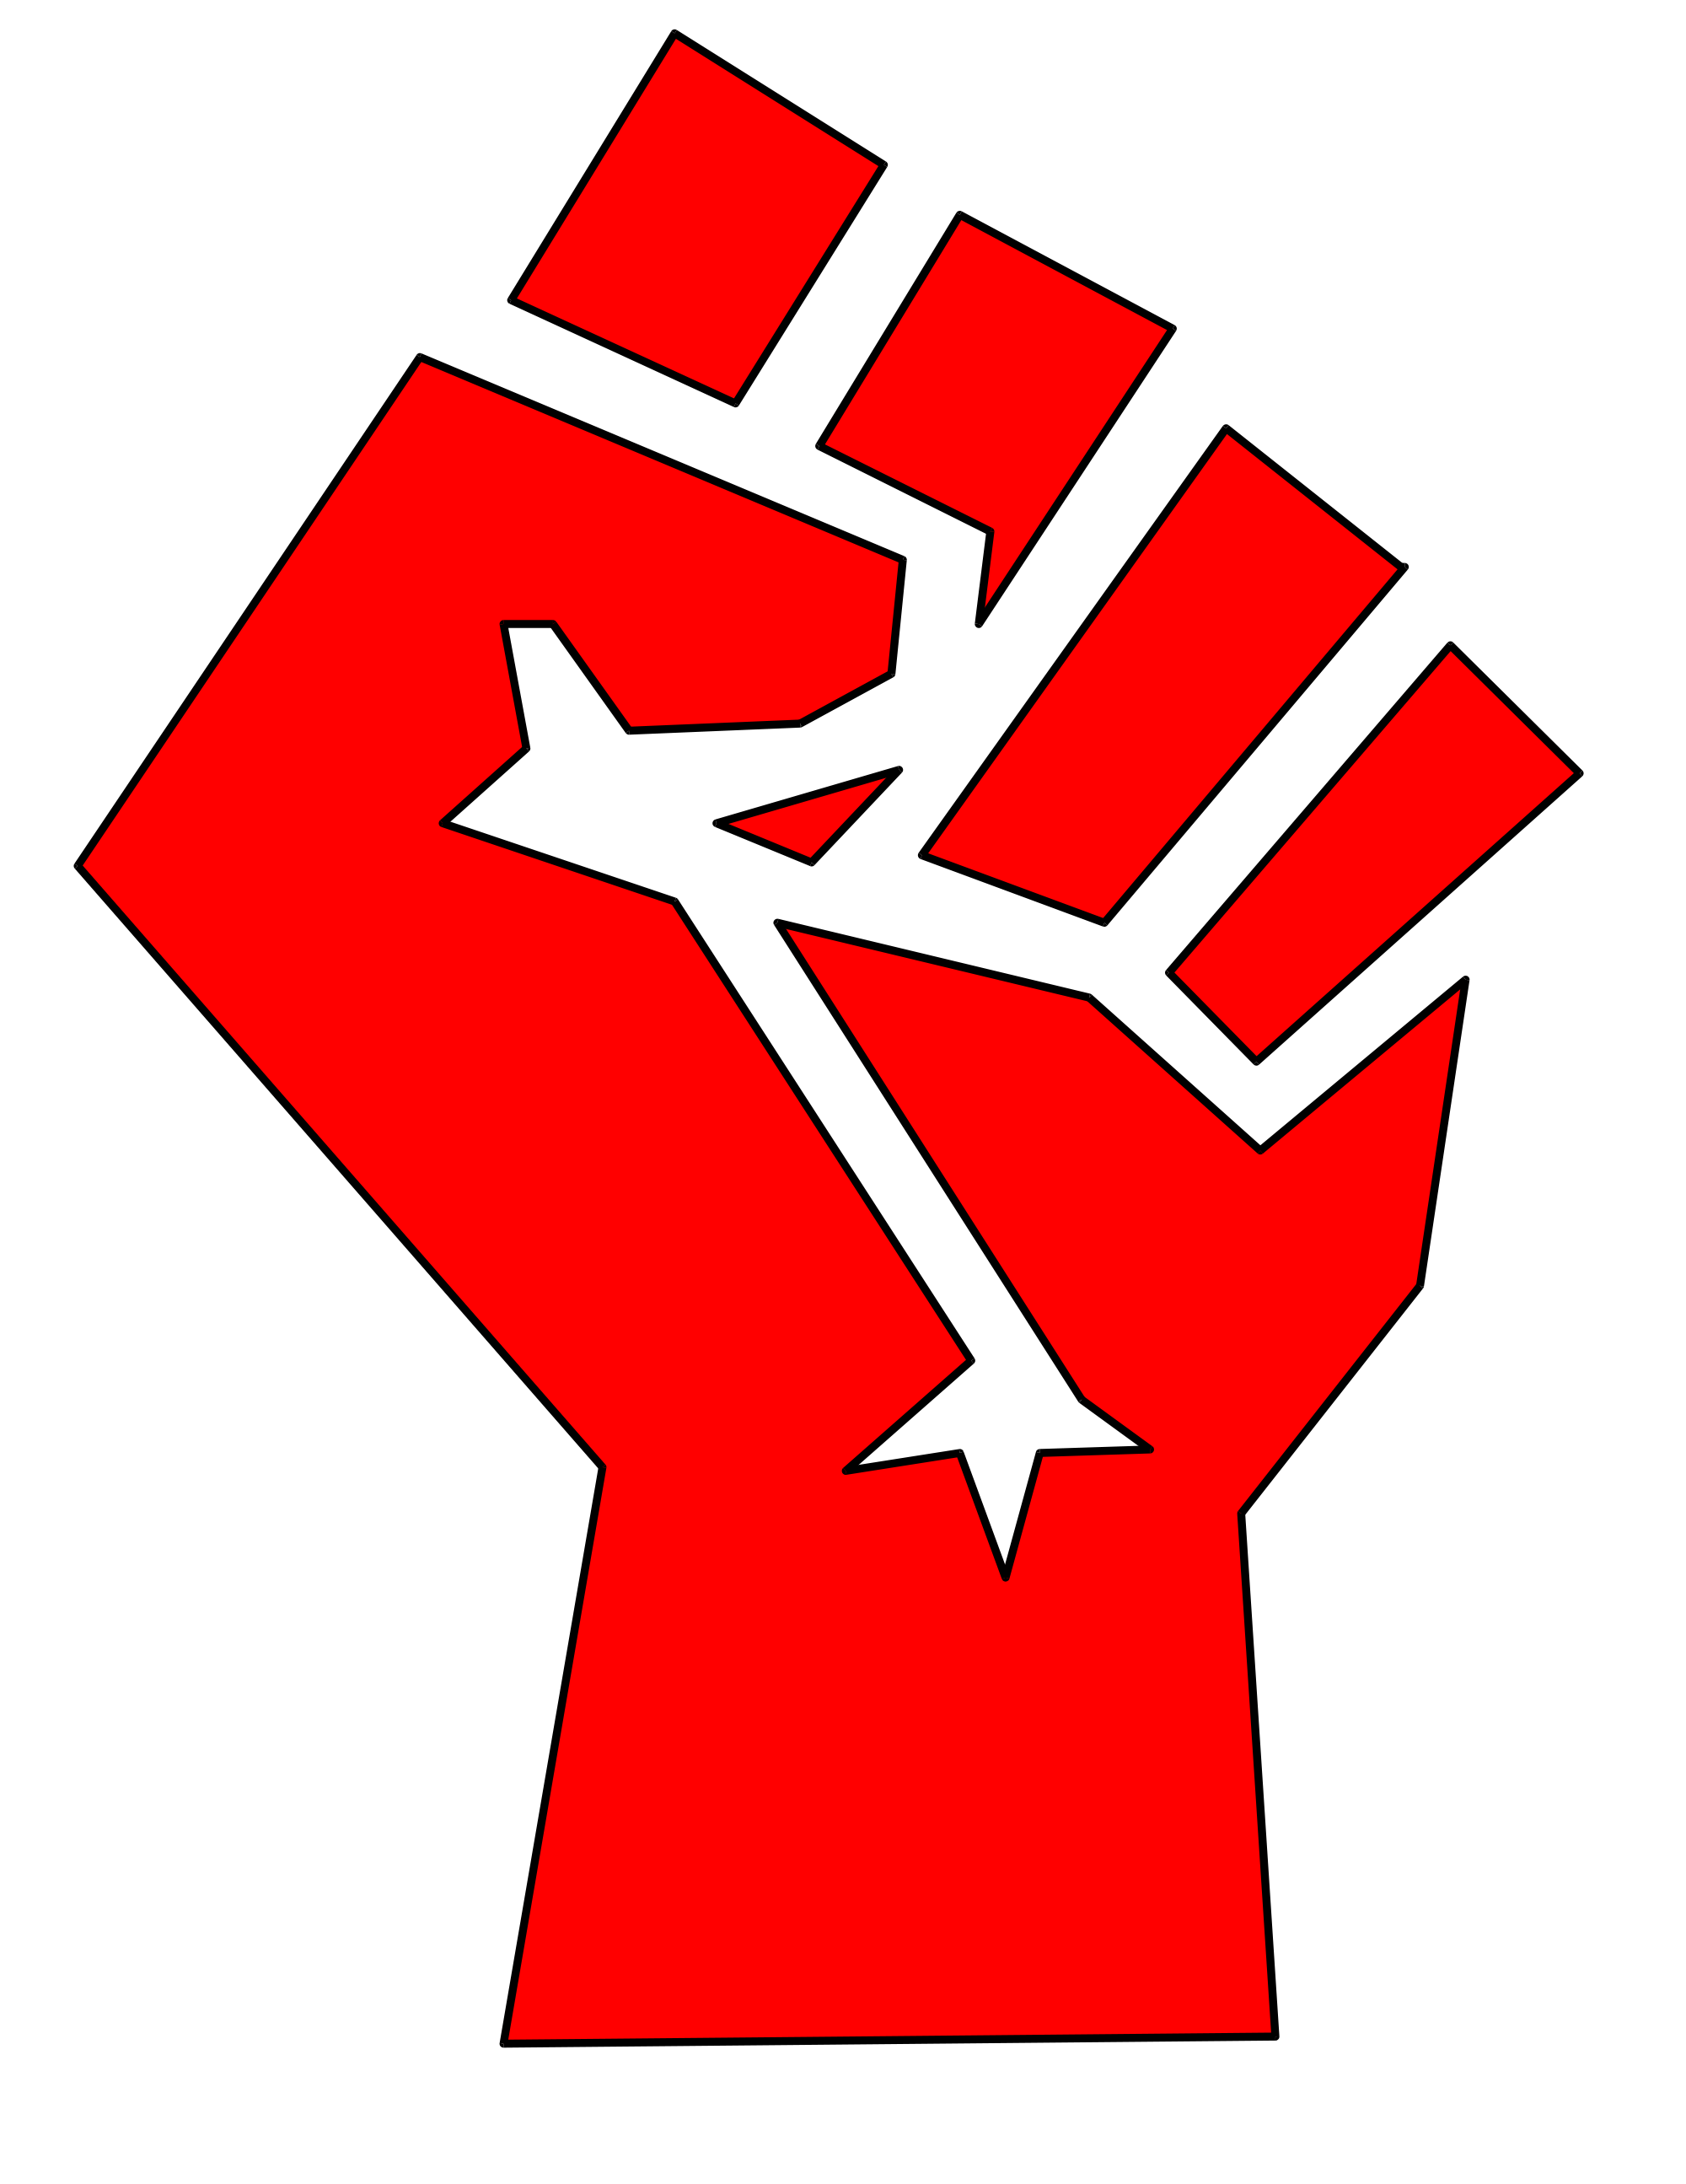 Fist clipart red Russian  the Communism During